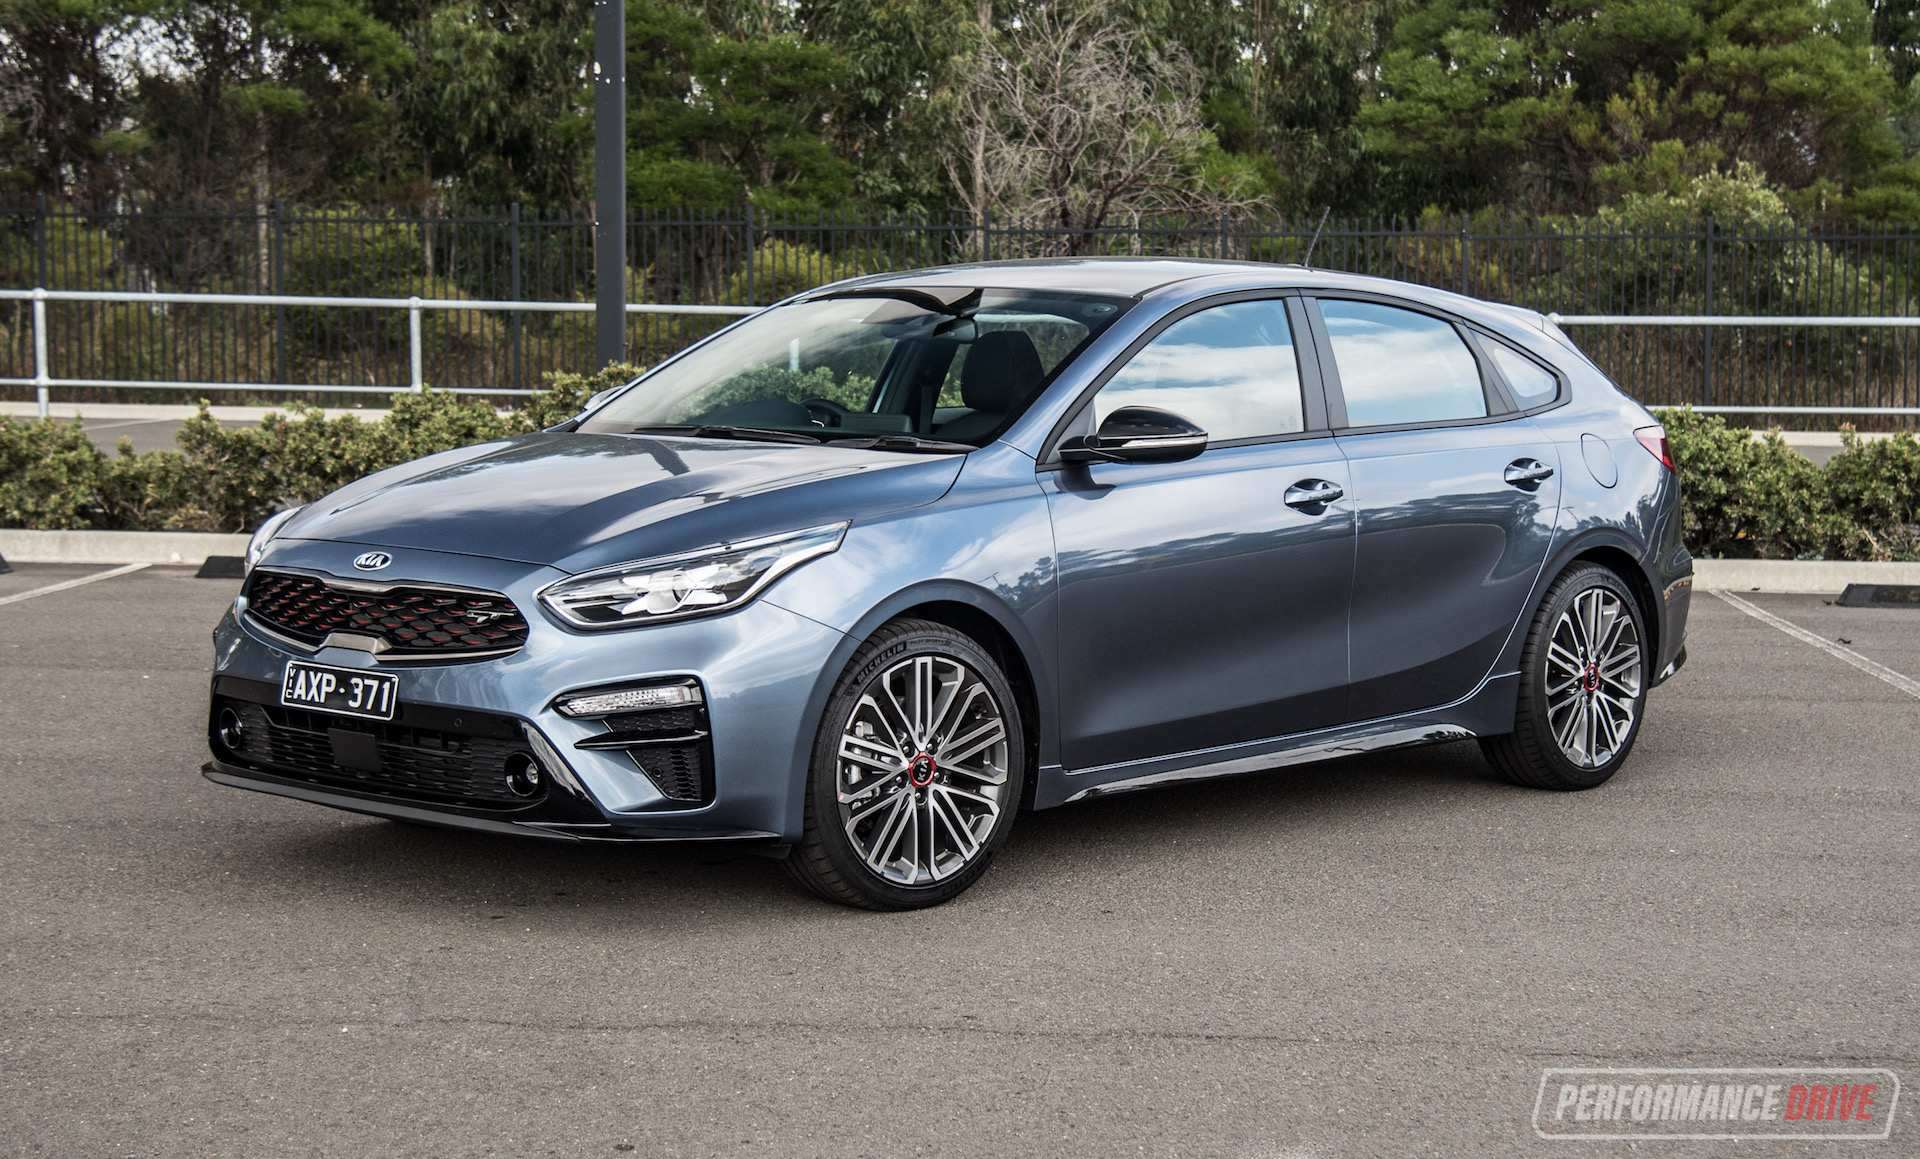 39 The Kia Cerato Hatch 2019 Review Reviews with Kia Cerato Hatch 2019 Review